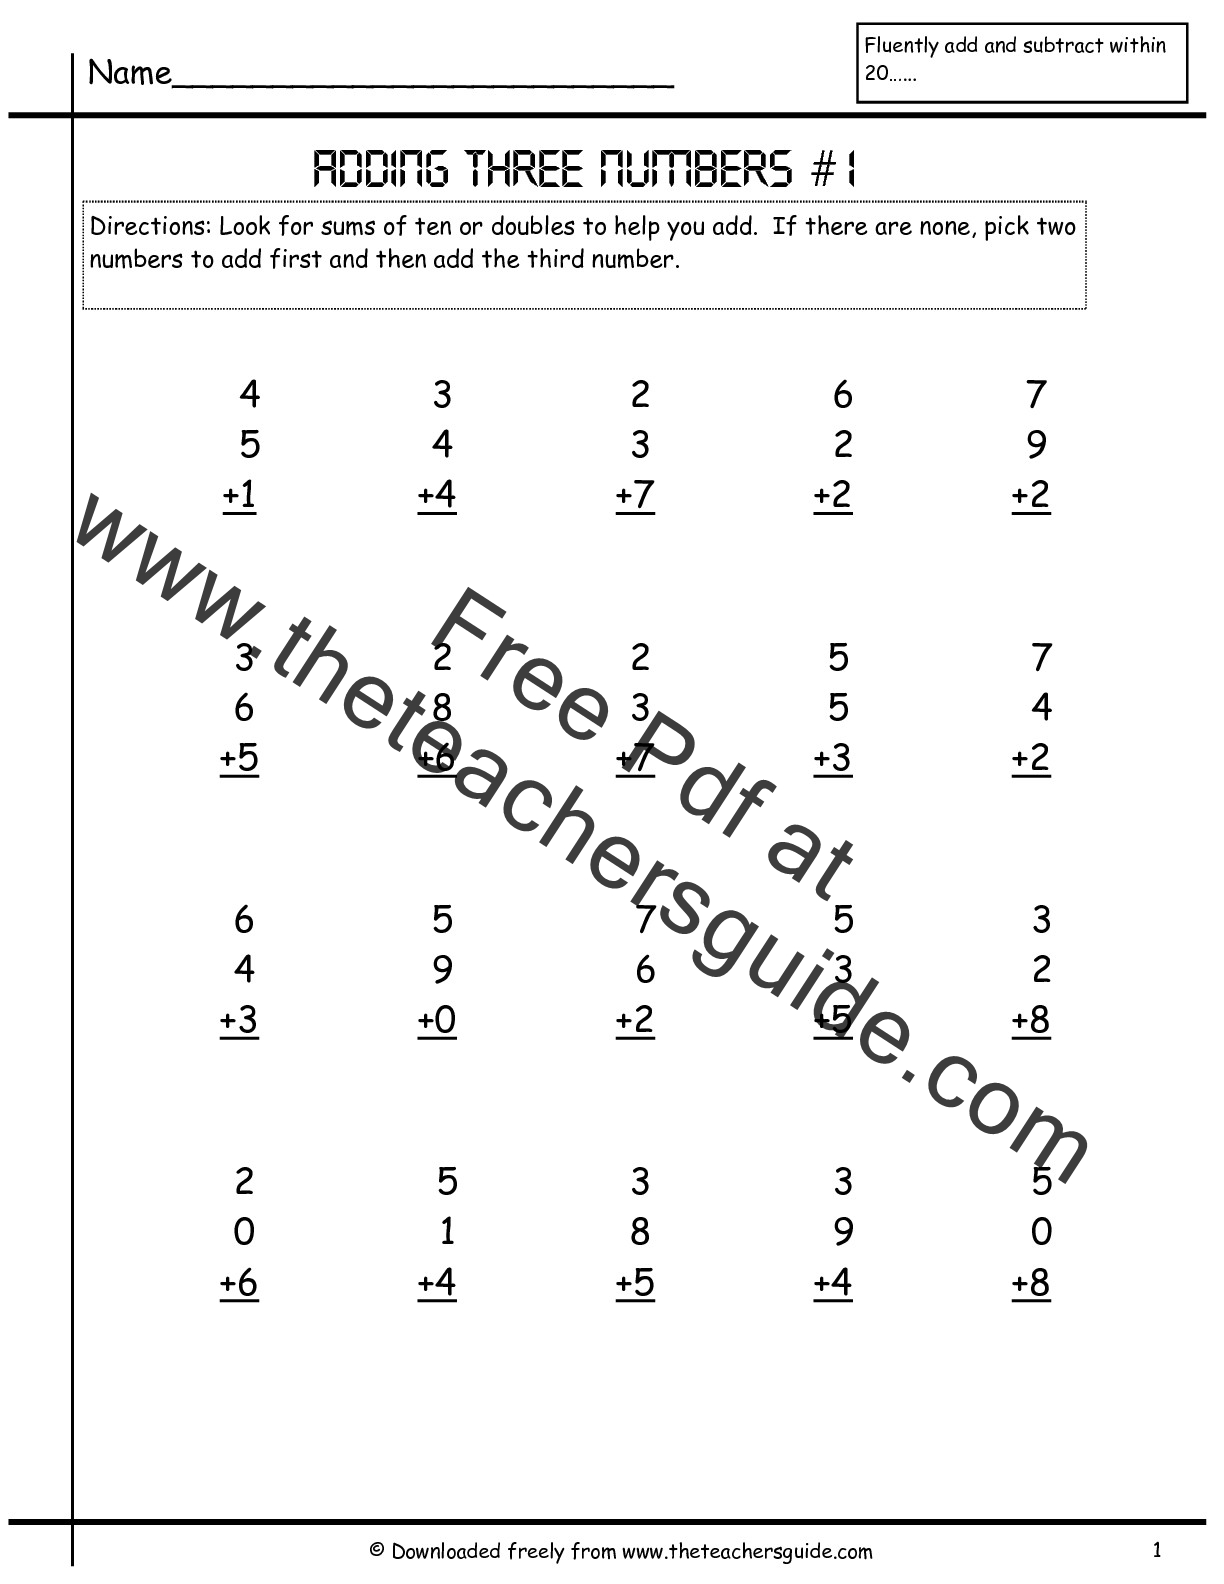 Adding Three Single Digit Numbers Worksheets From The Teacher S Guide